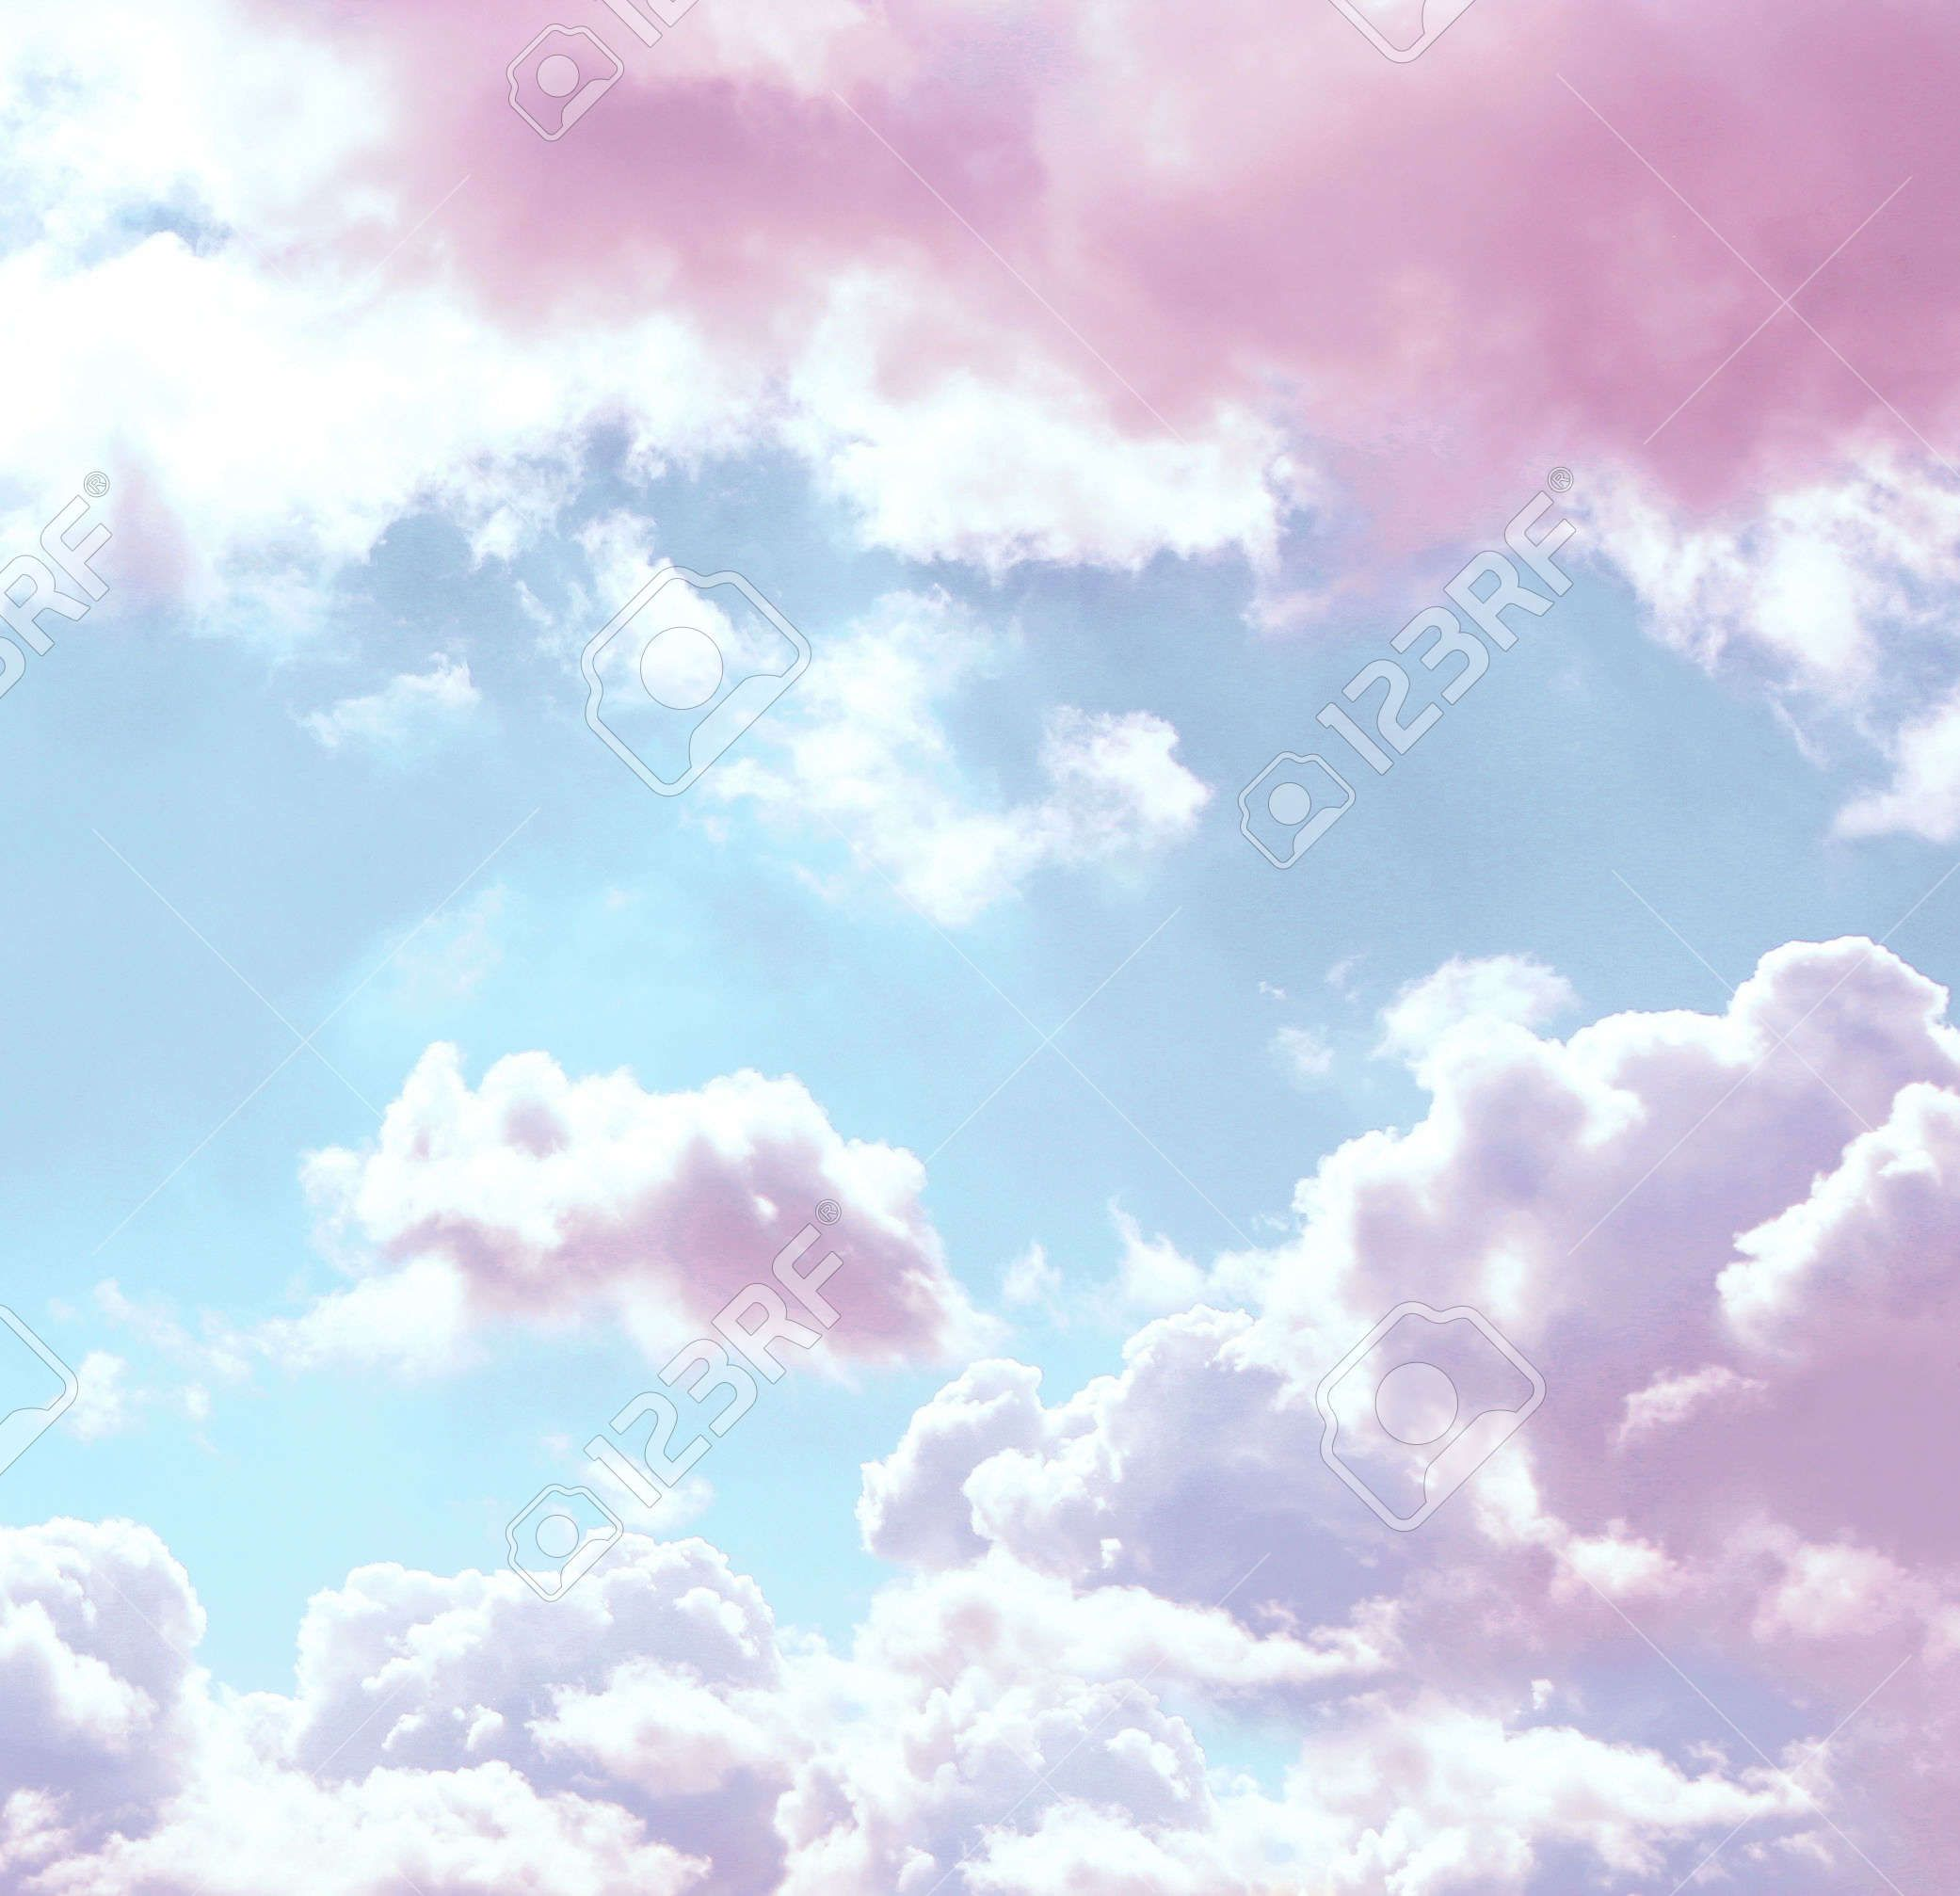 Blue sky background with pink clouds Blue sky background Pink 2082x2014